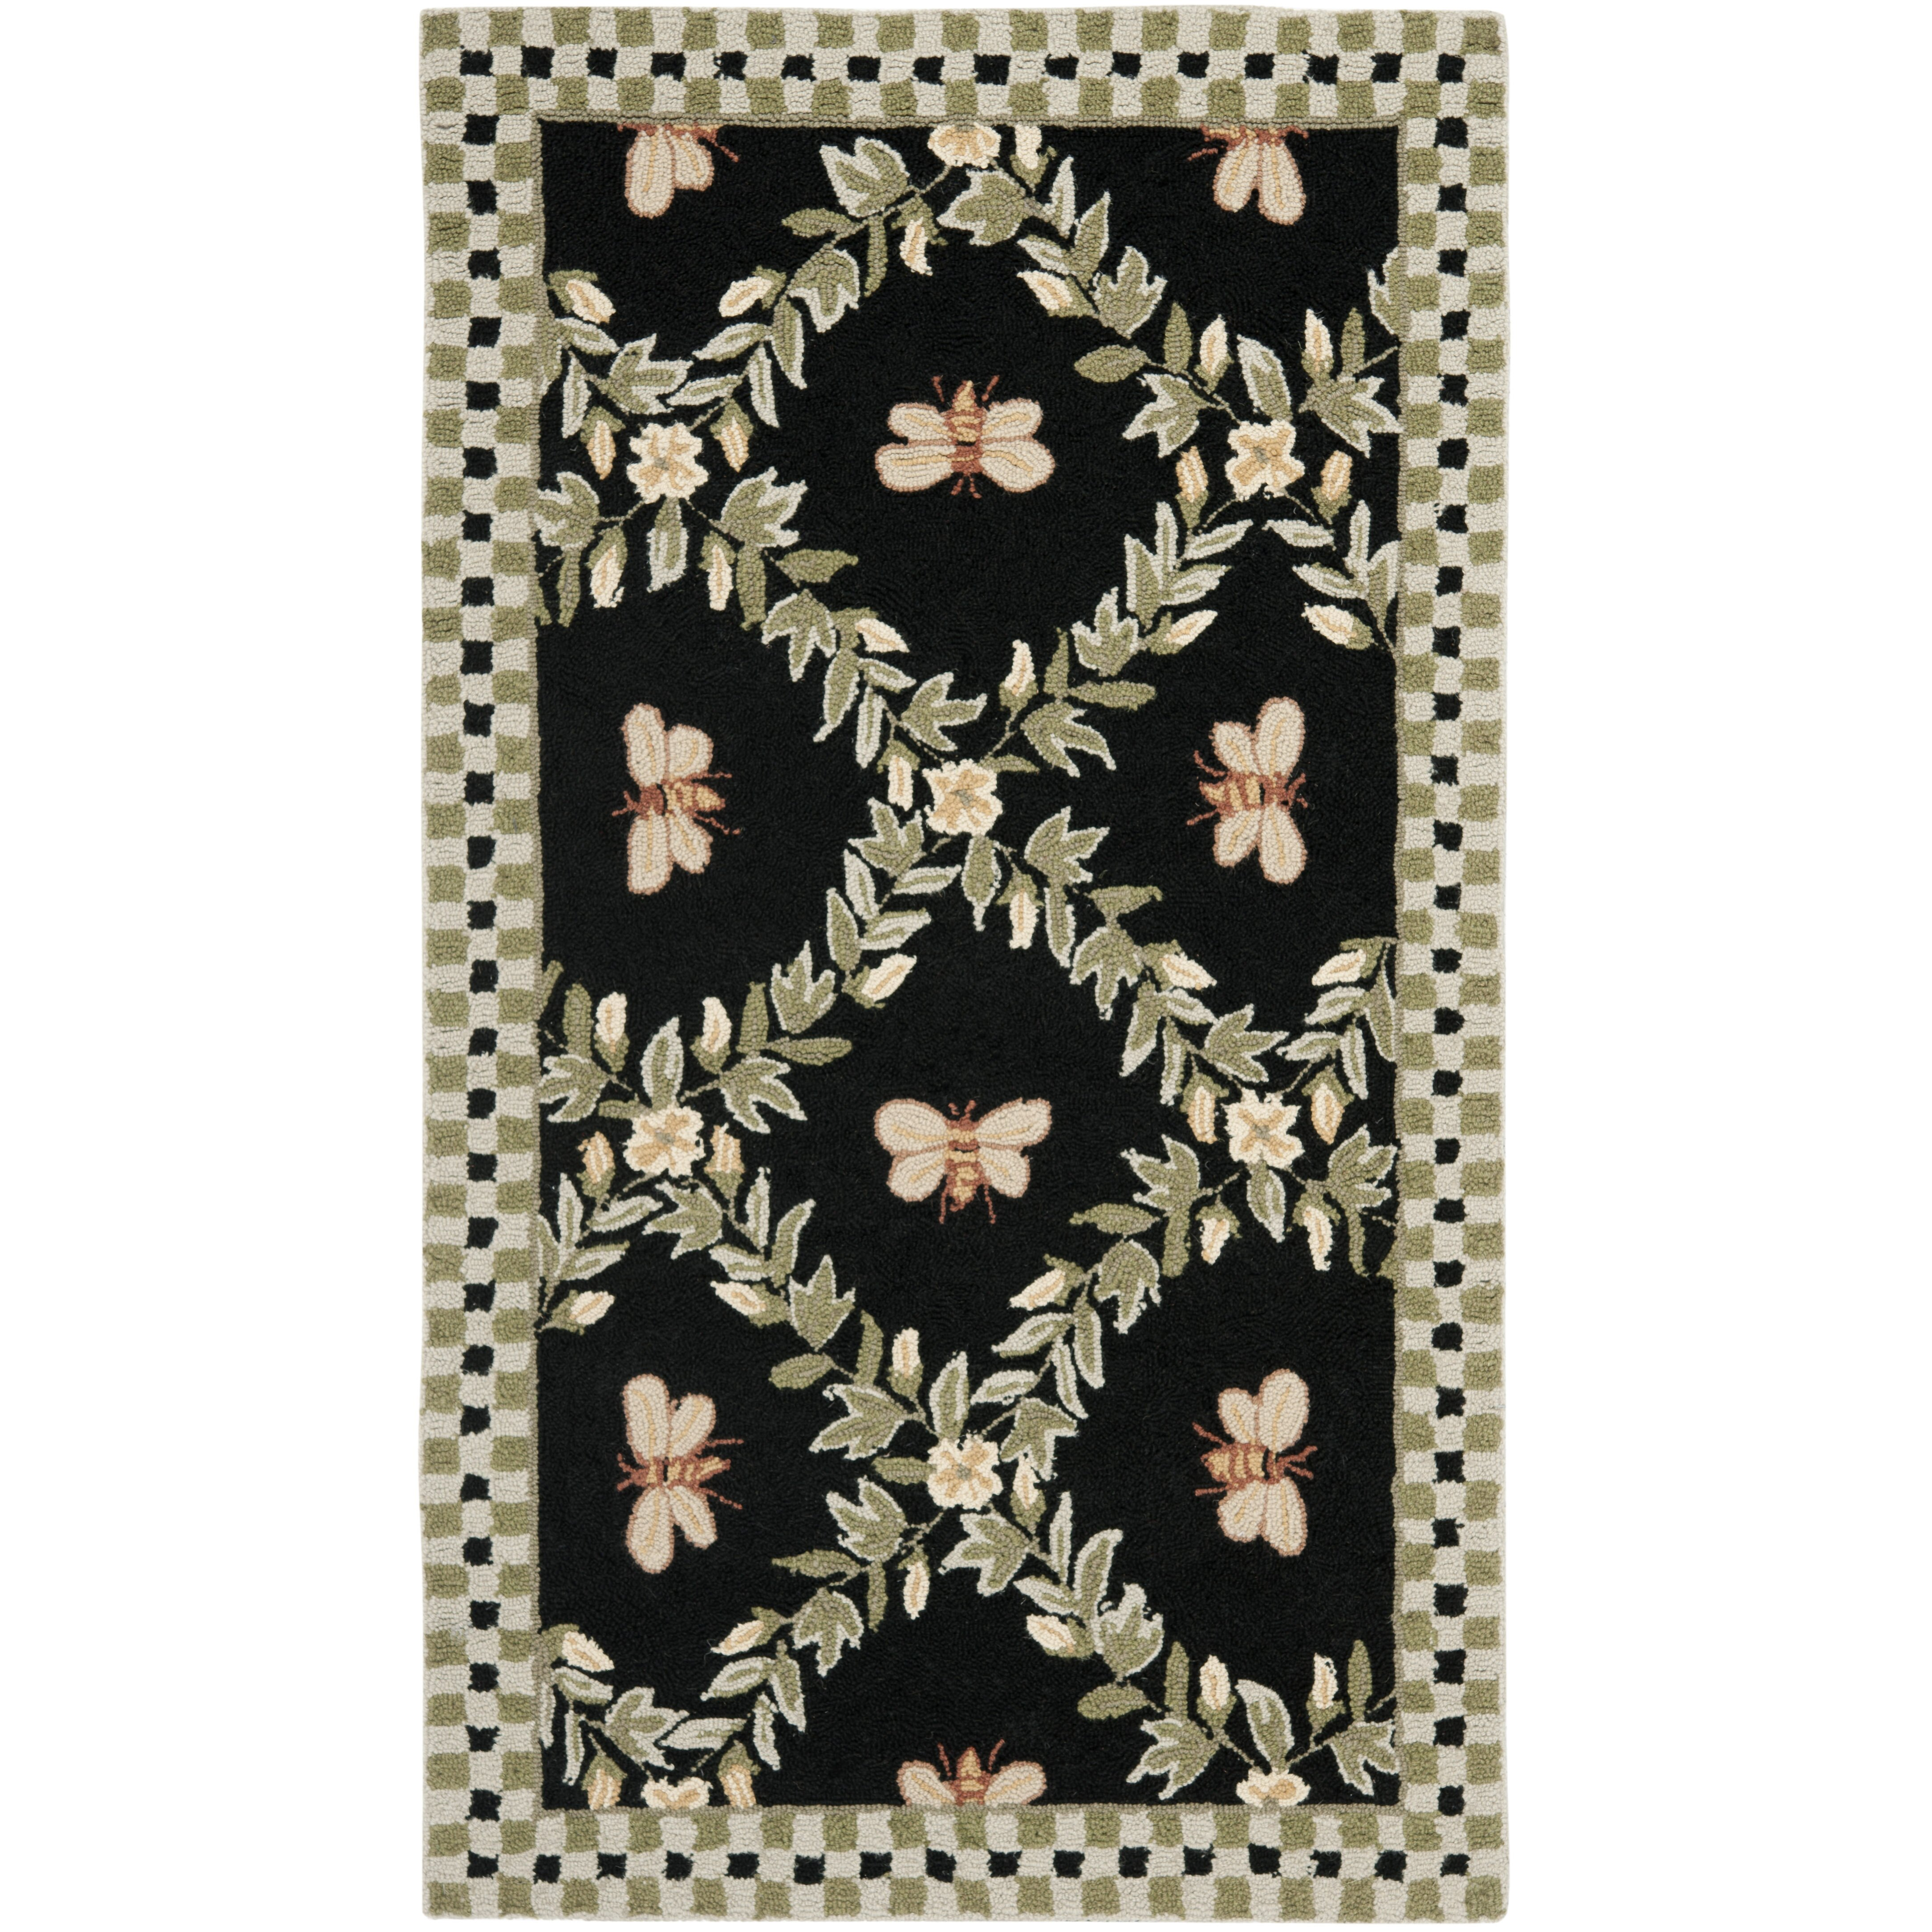 Bumble Bee Rug Home Decor